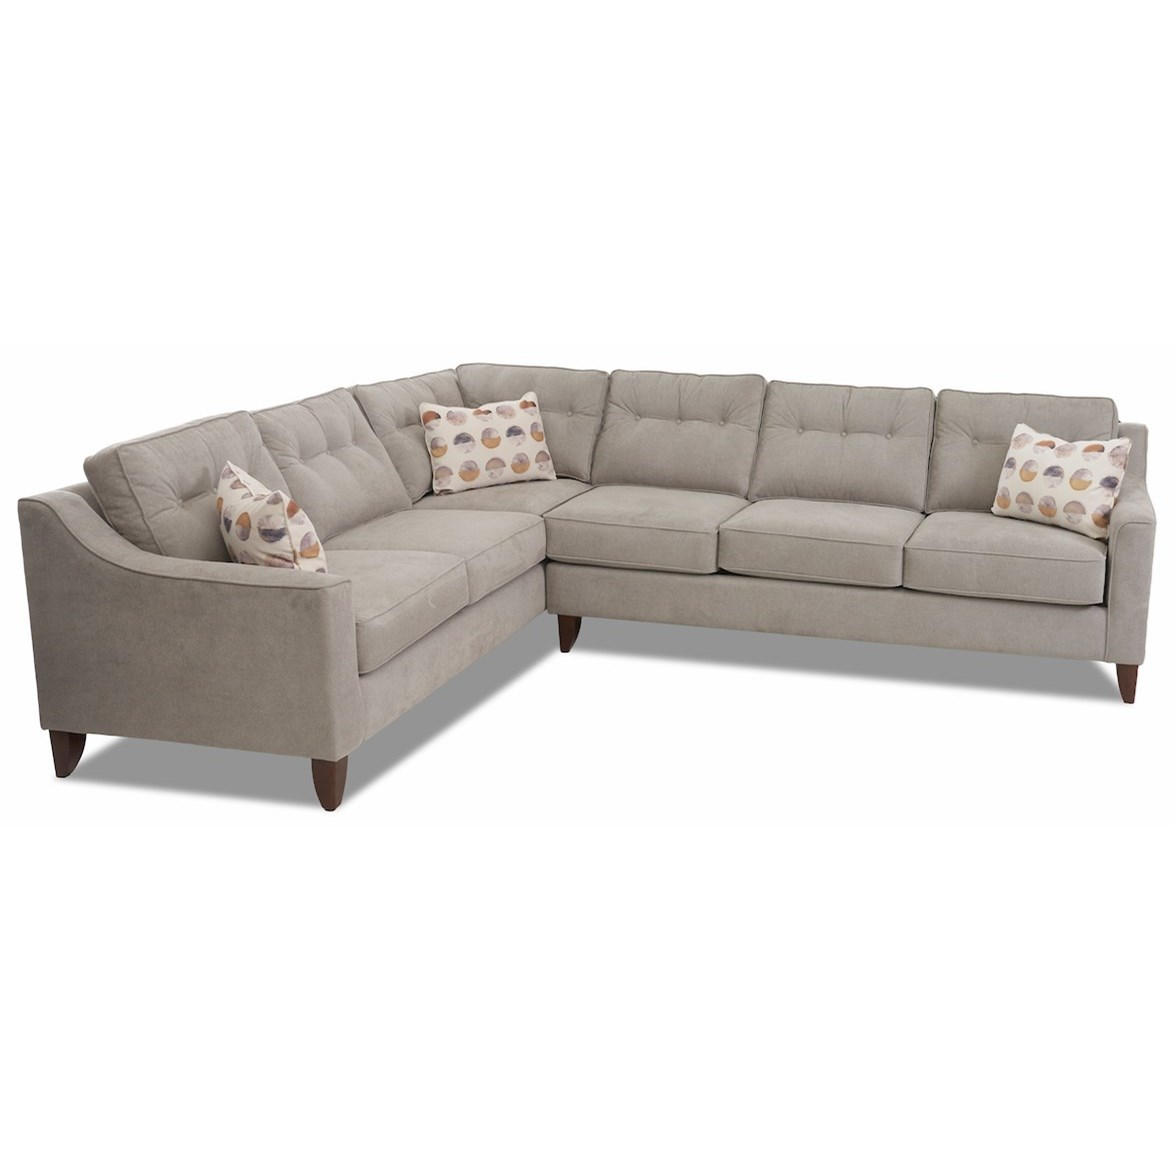 Audrina 2-Piece Sectional Sofa w/ LAF Corner Sofa by Klaussner at Johnny Janosik